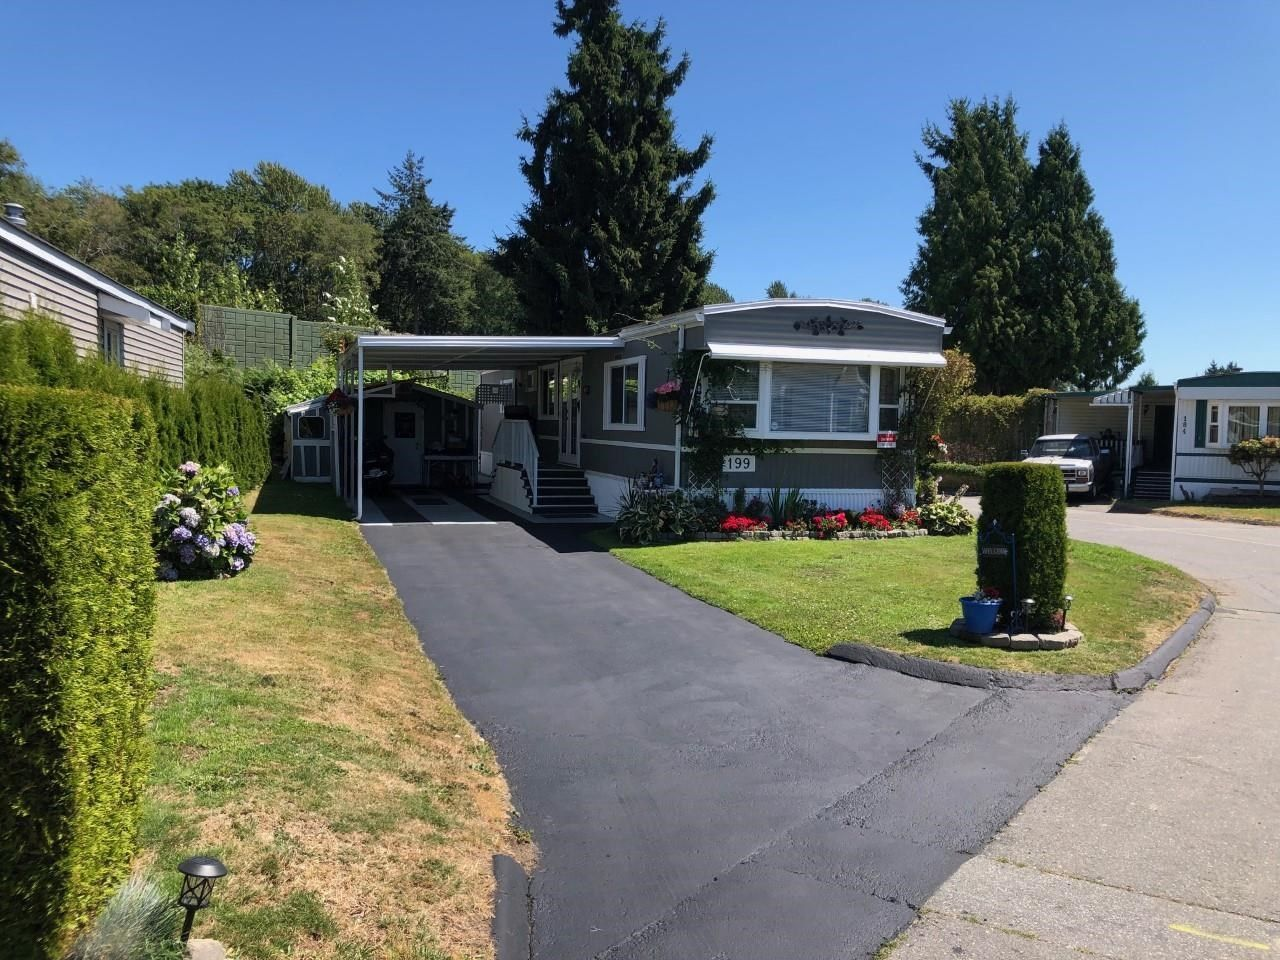 Main Photo: 199 1840 160 Street in Surrey: King George Corridor Manufactured Home for sale (South Surrey White Rock)  : MLS®# R2604438